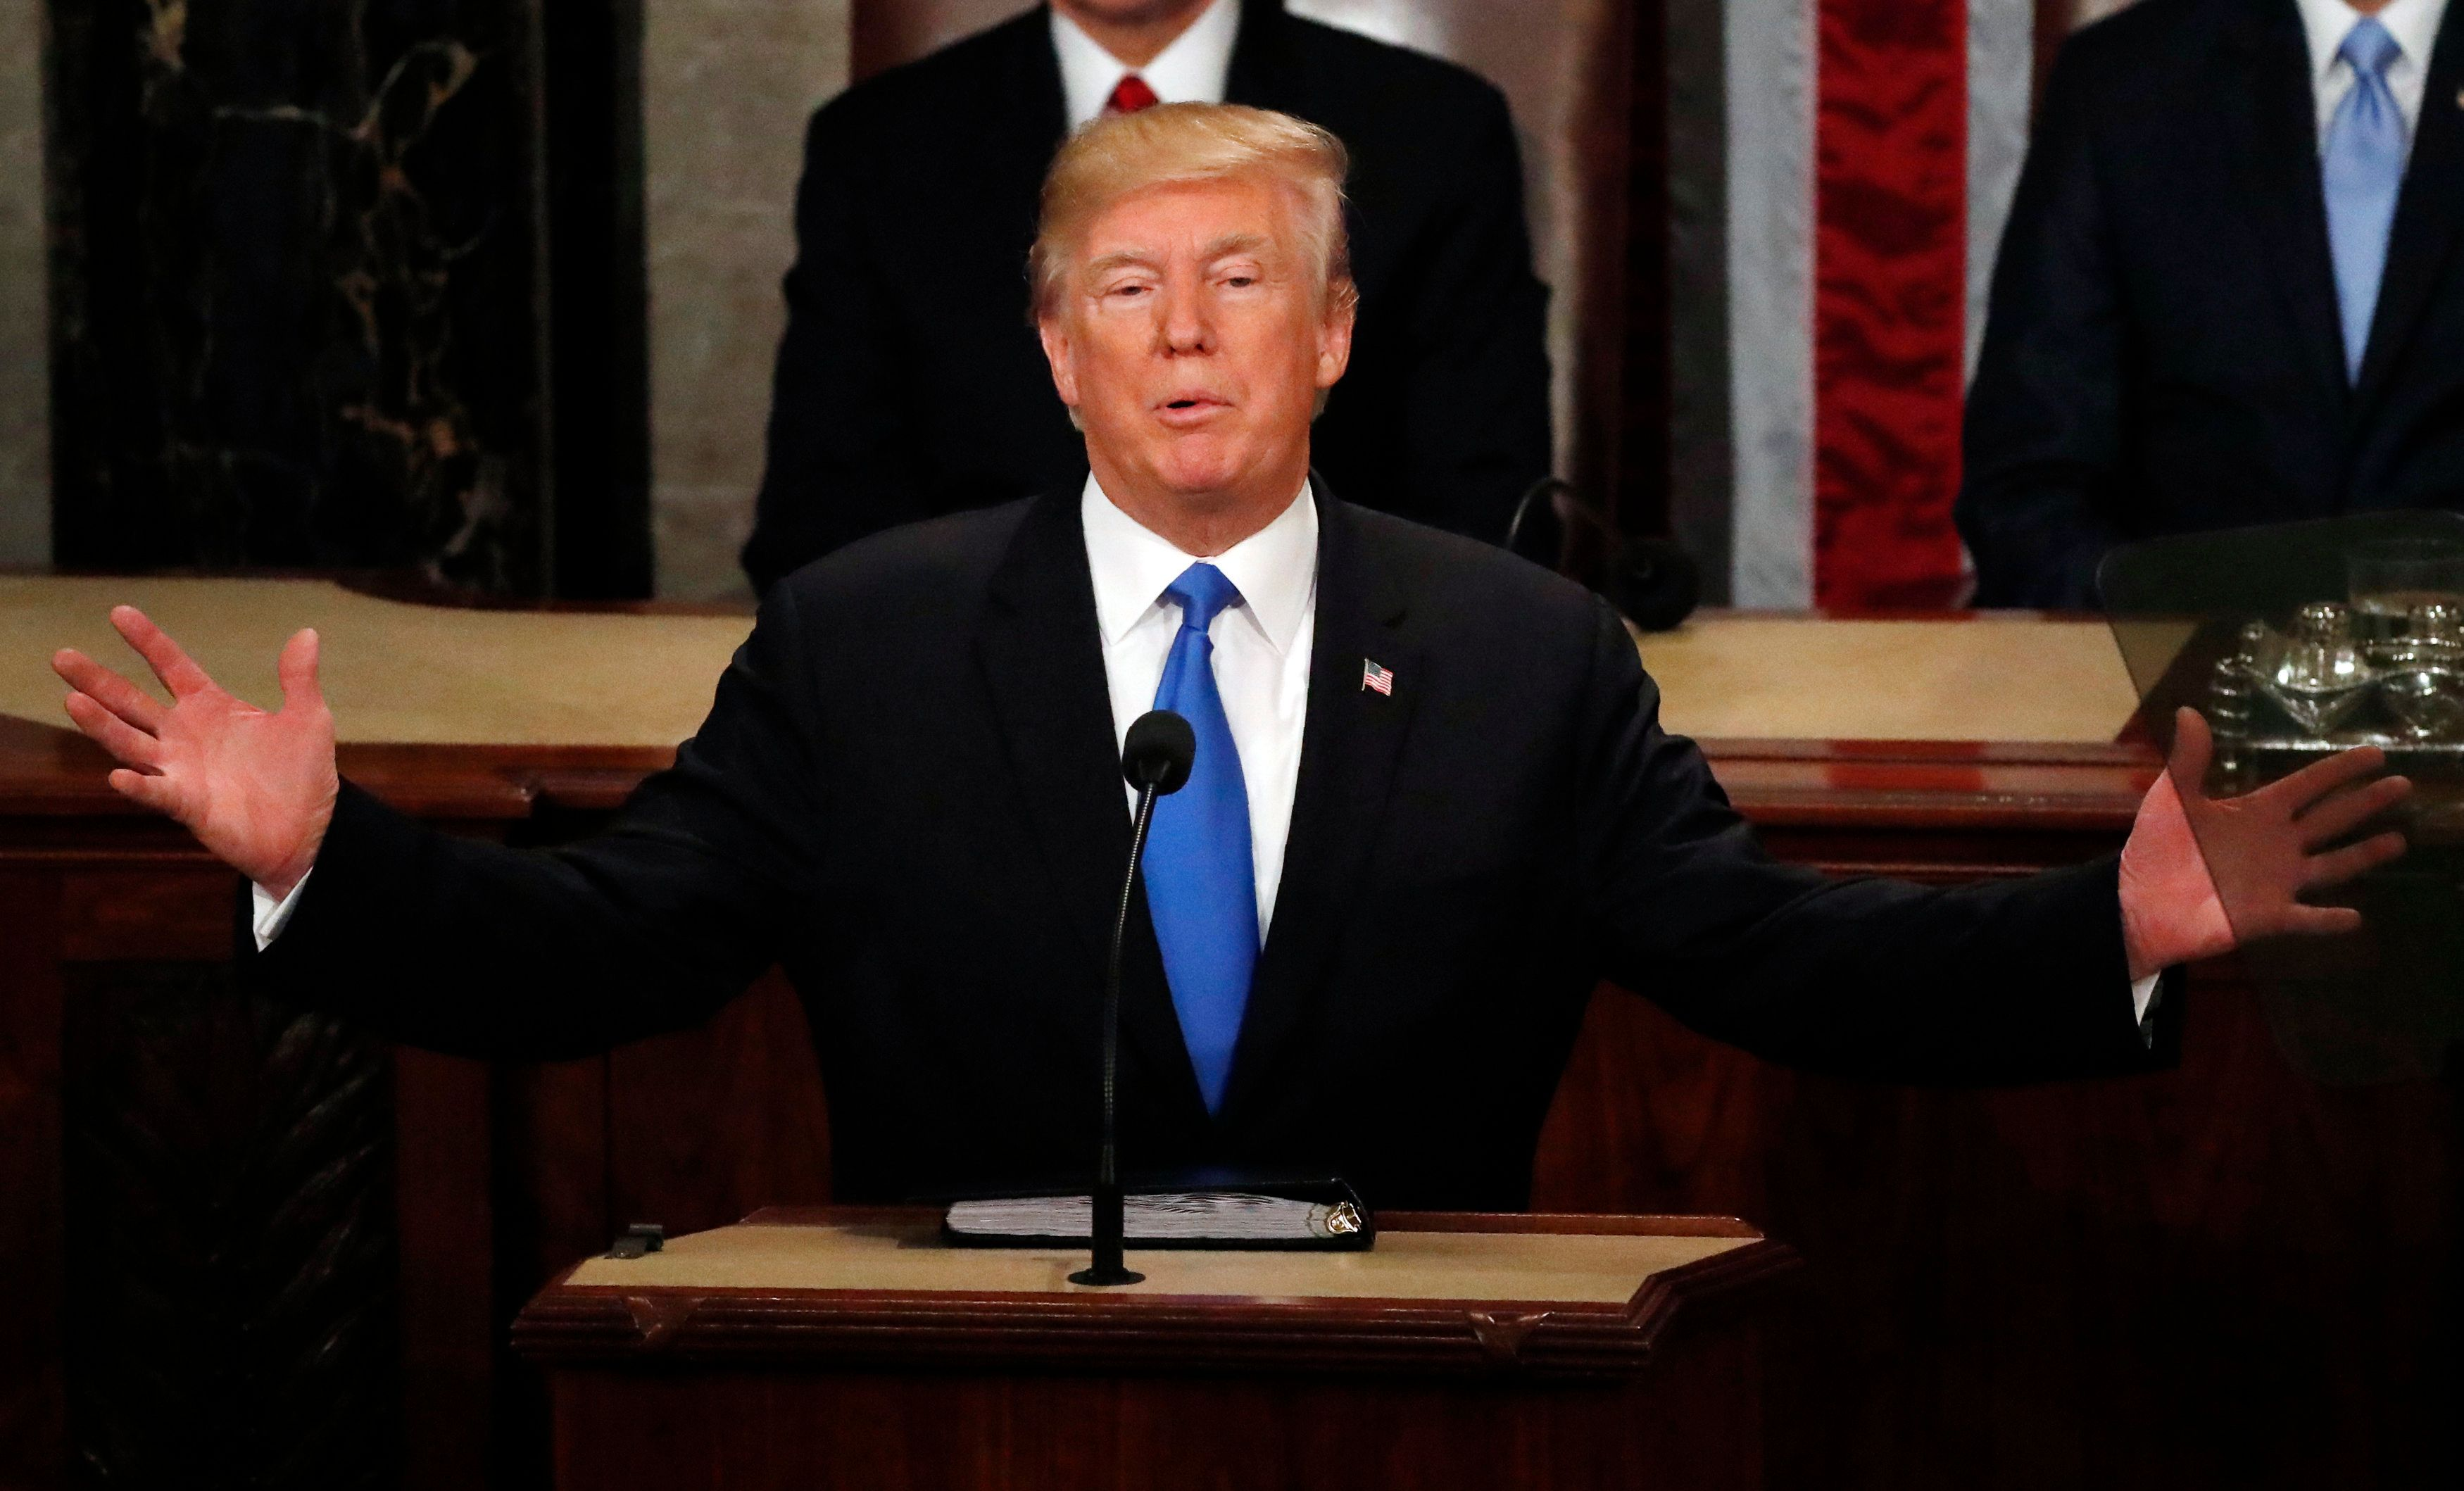 U.S. President Donald Trump delivers his State of the Union address to a joint session of the U.S. Congress on Capitol Hill in Washington, U.S. January 30, 2018. REUTERS/Leah Millis